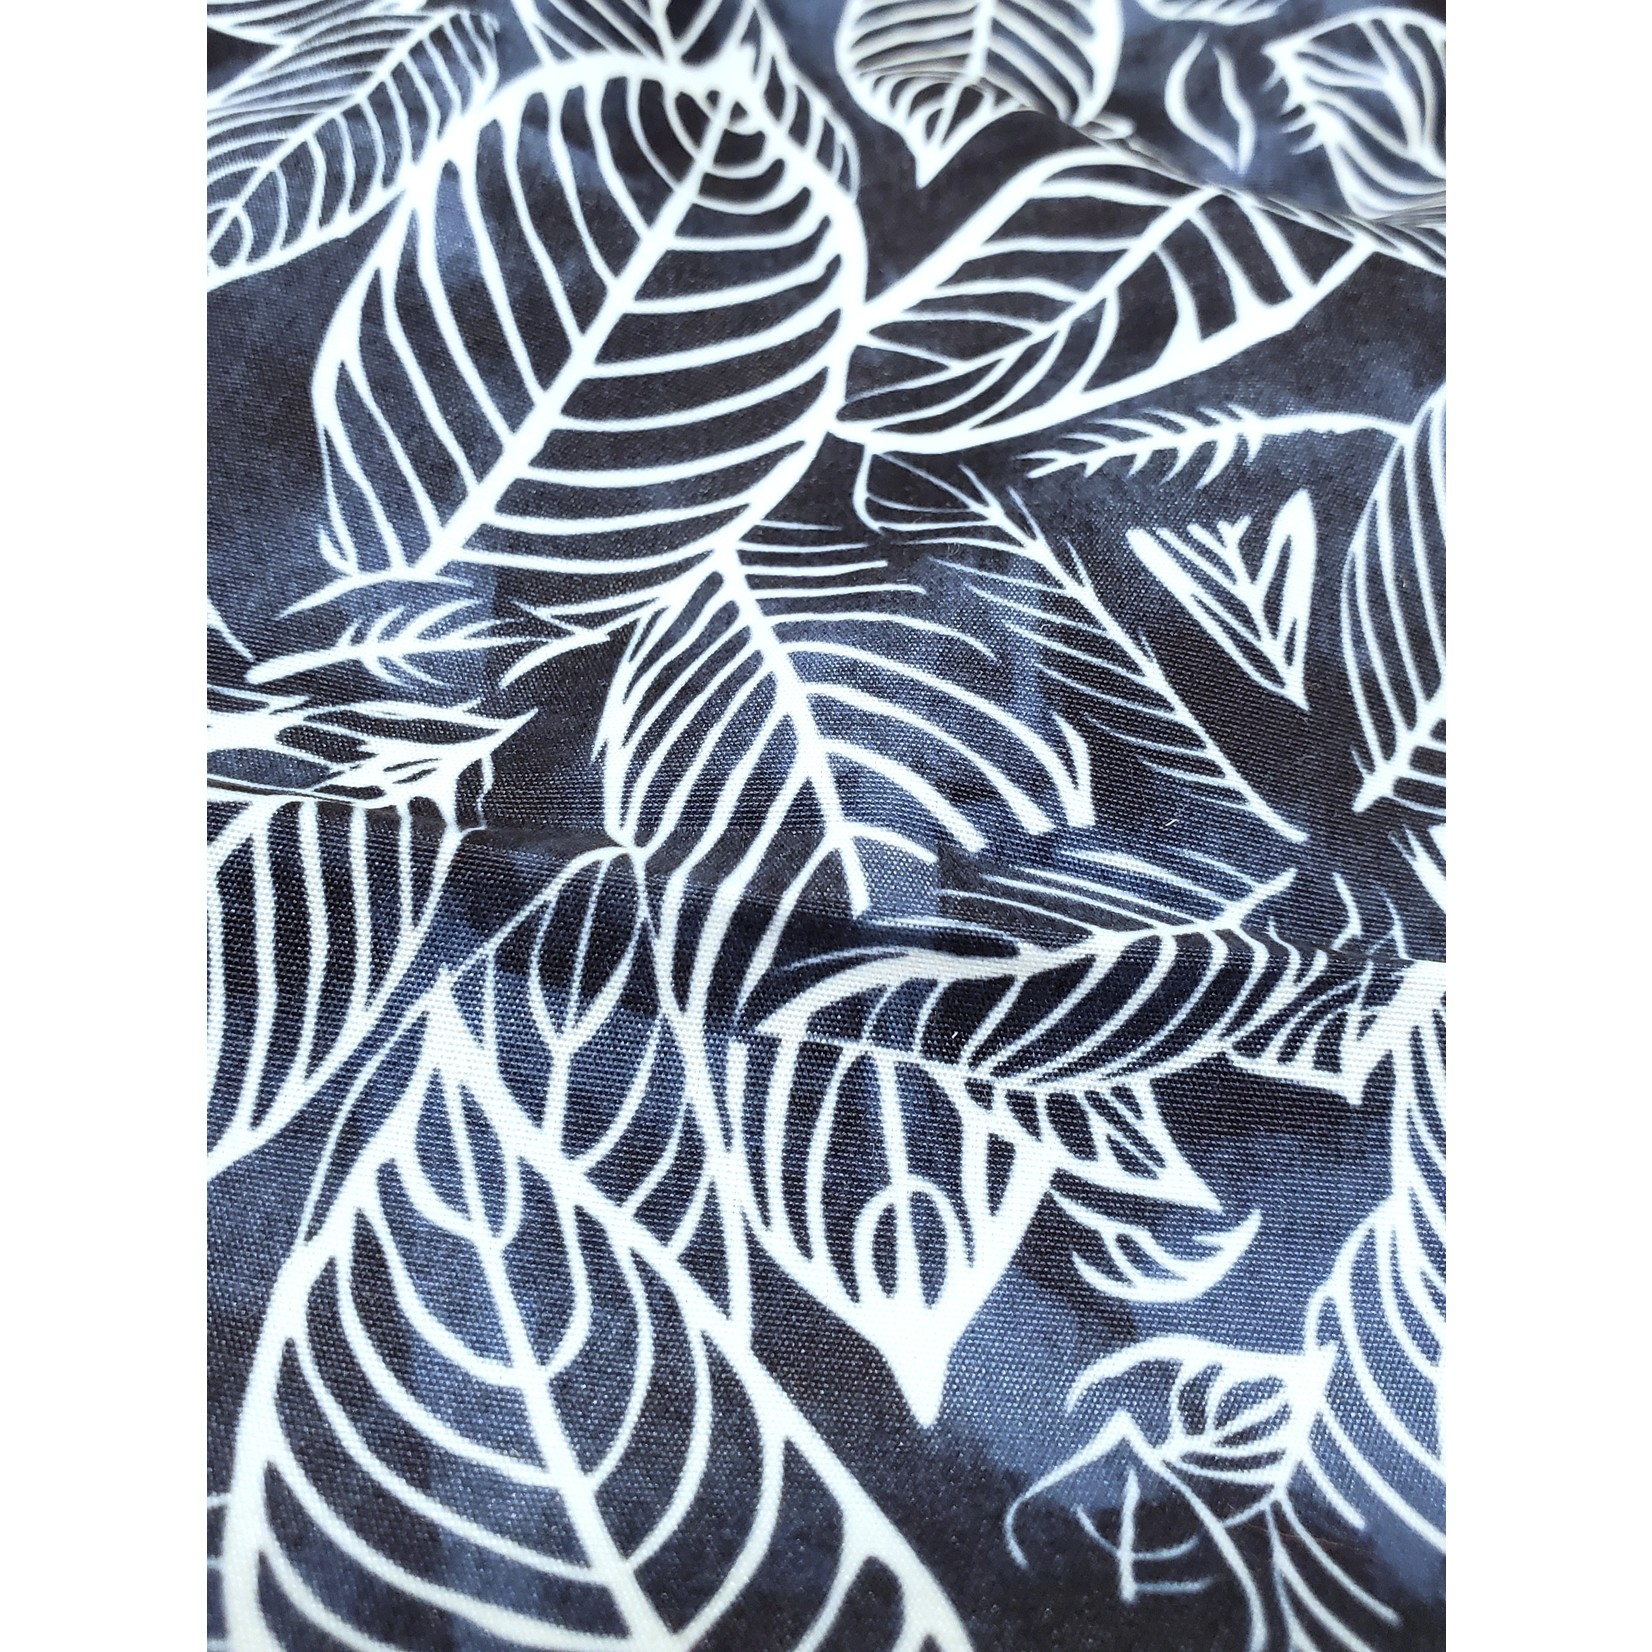 Blend Blend 20712263 Leaf Print Swim Trunks